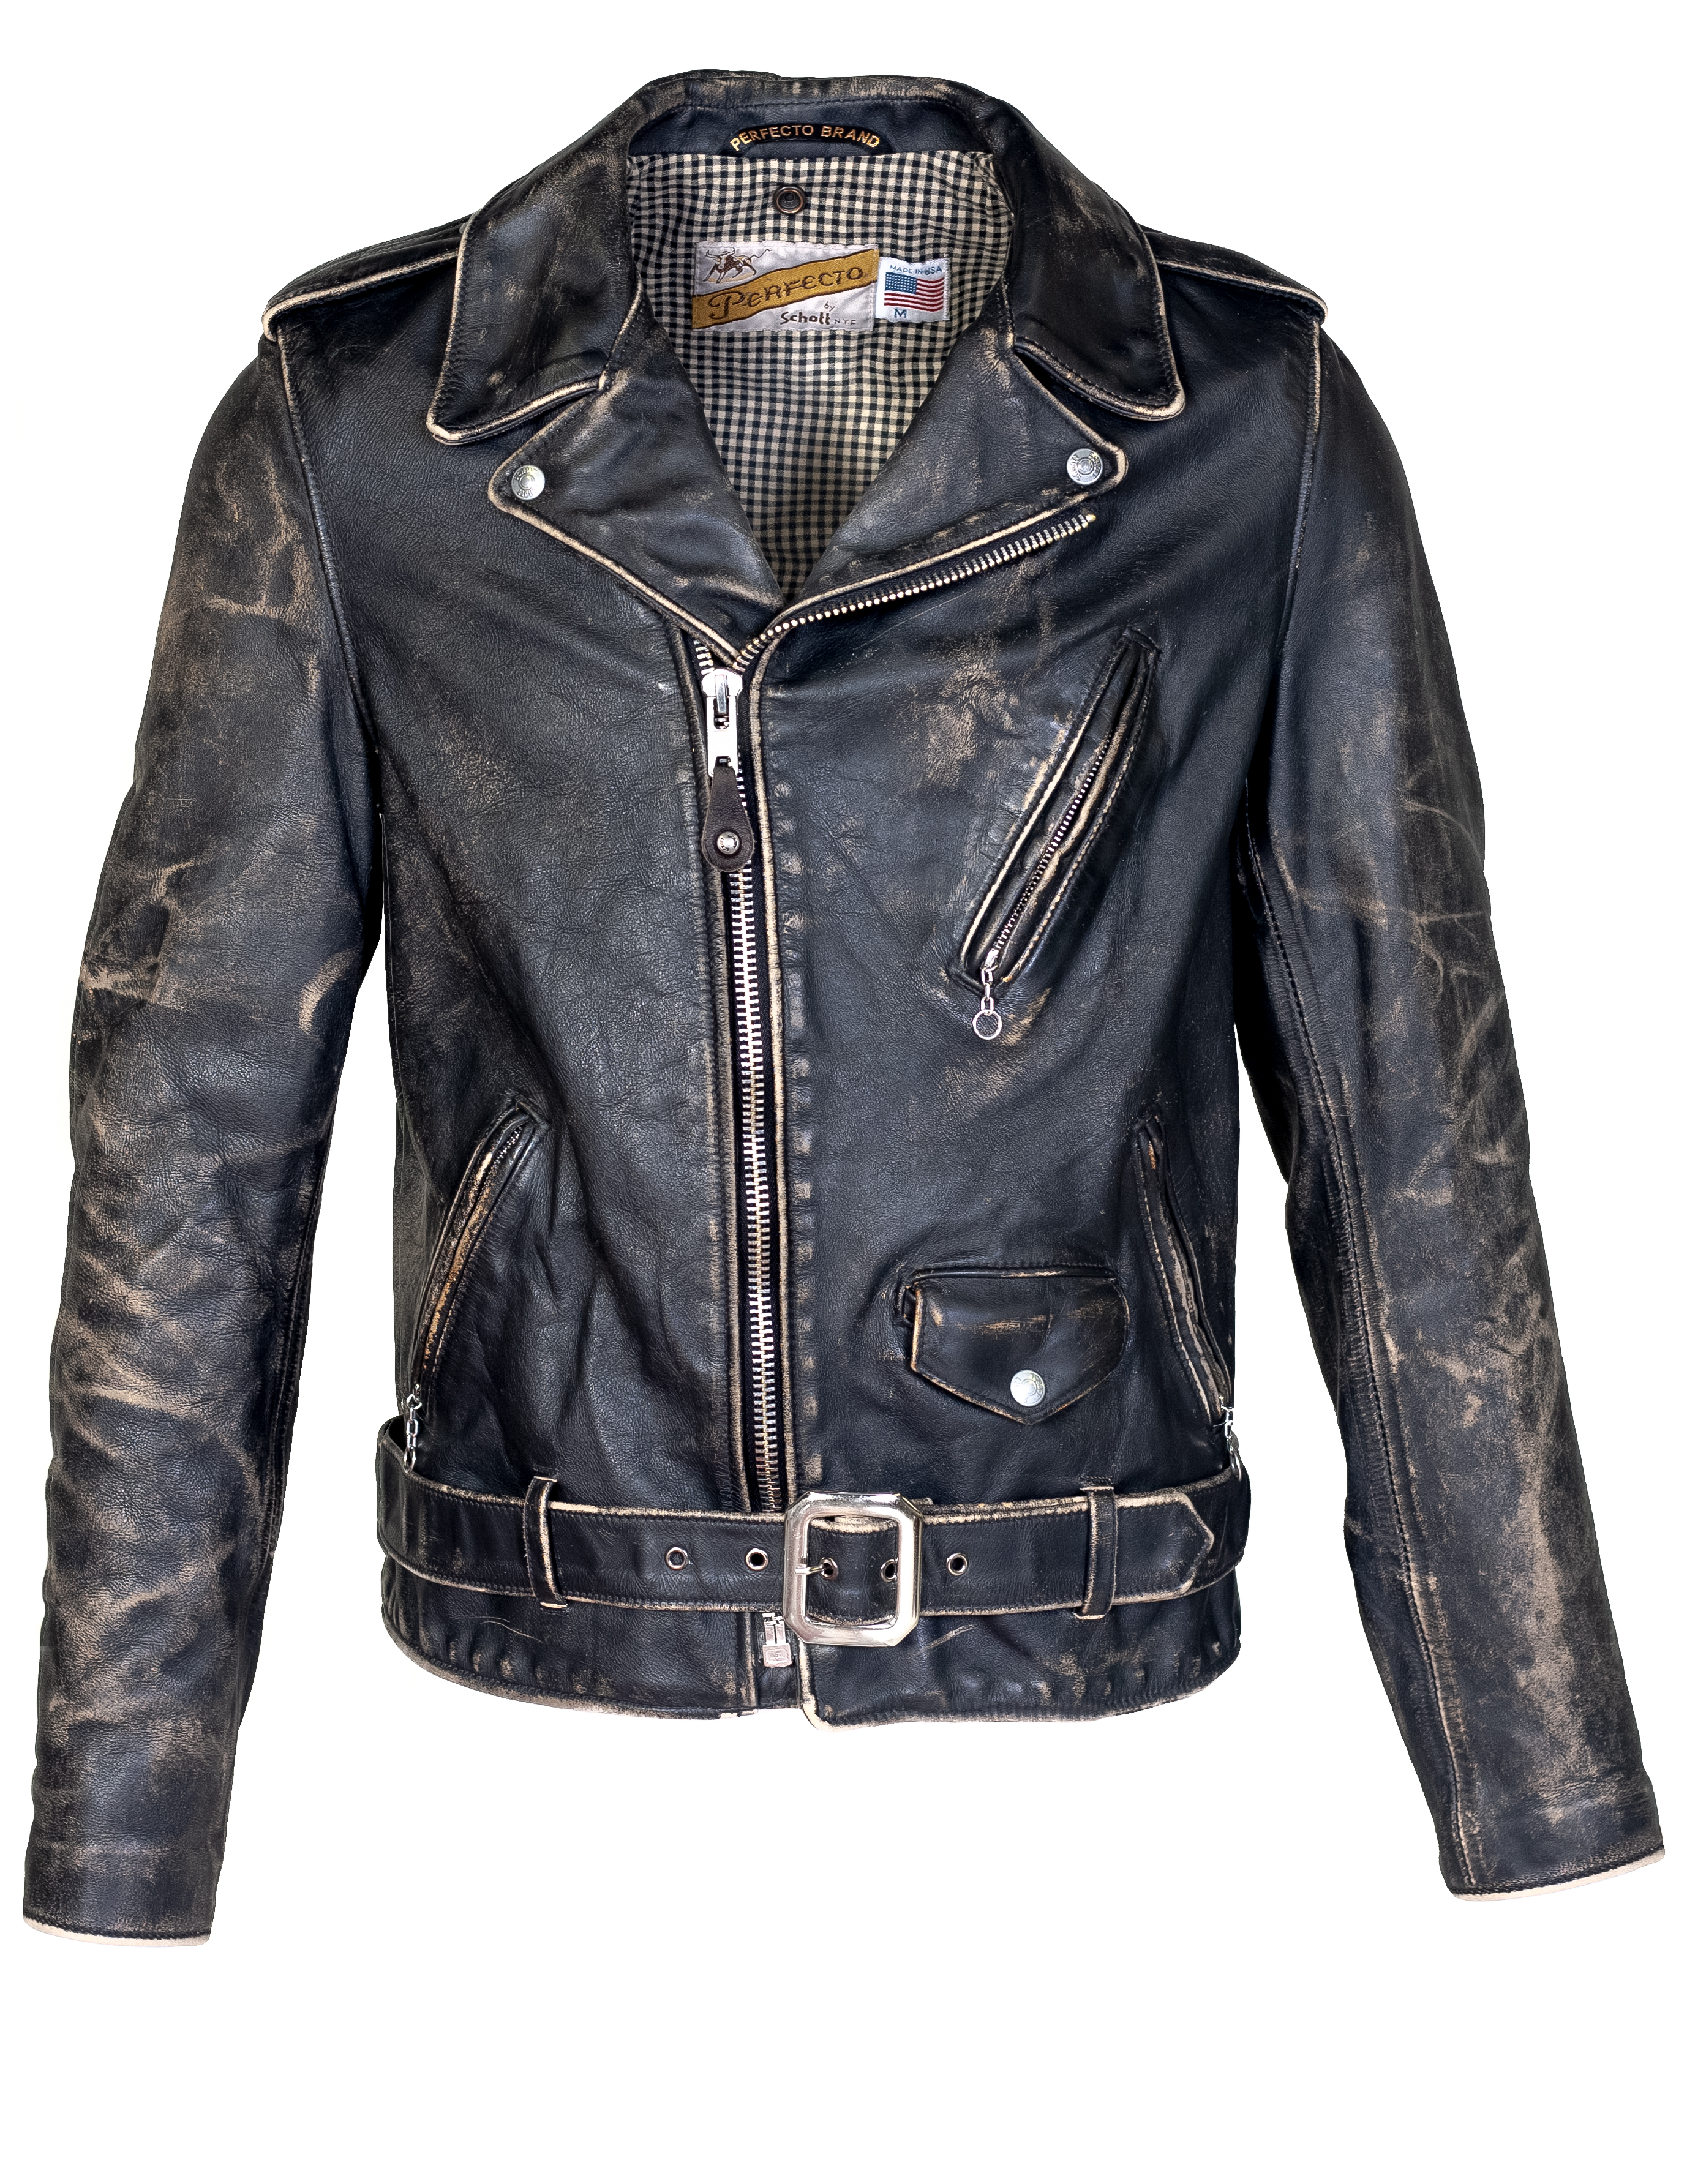 Perfecto® Brand PER70 Men's Vintaged Fitted Motorcycle Jacket